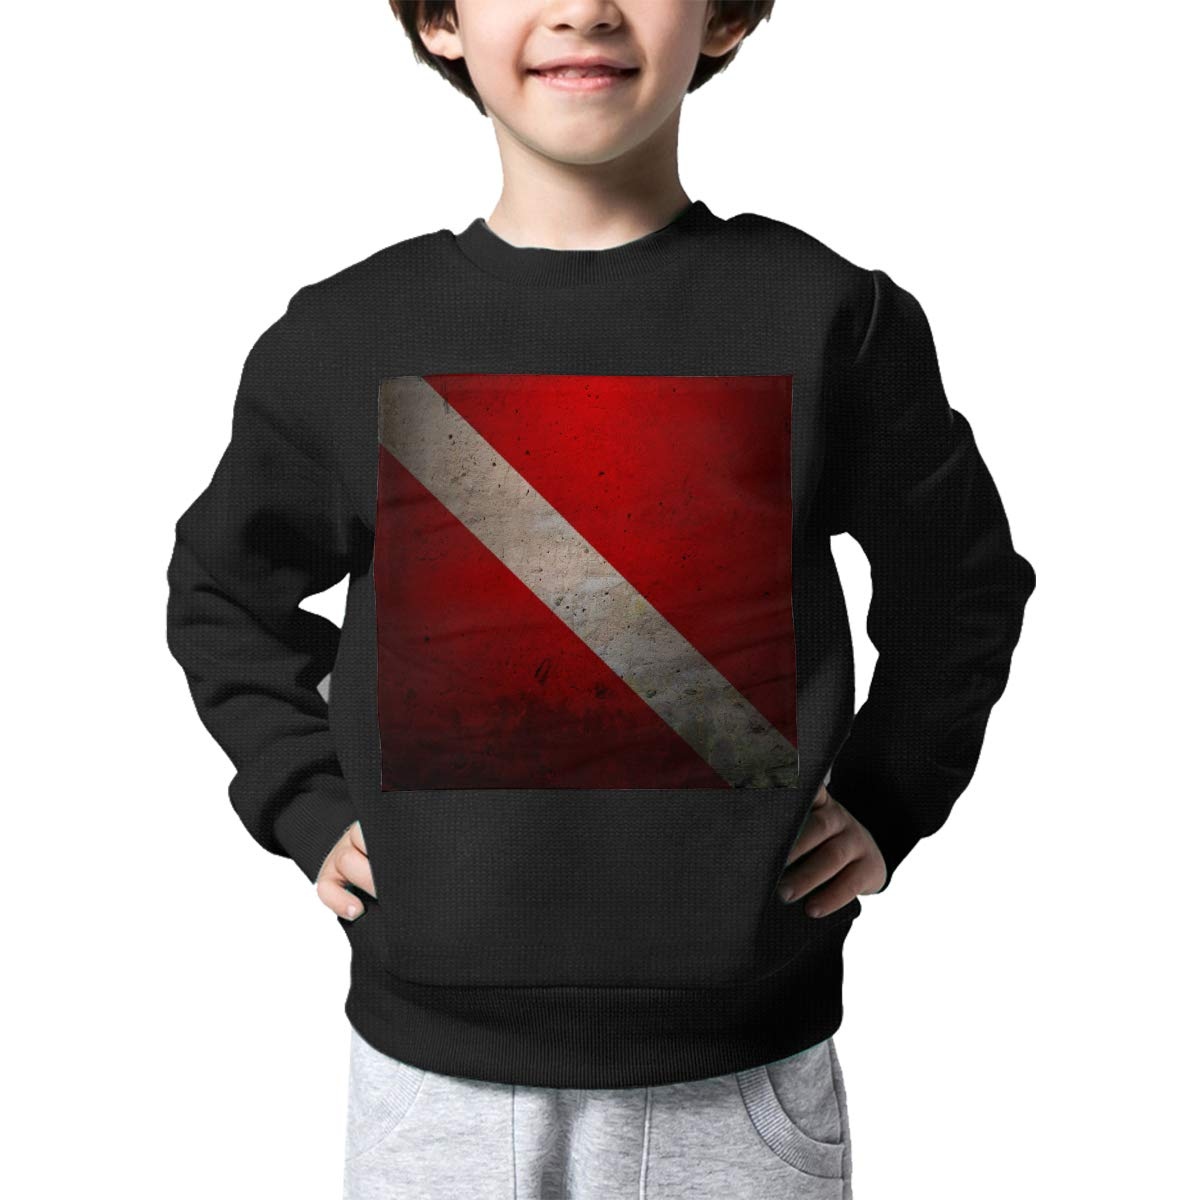 Diving Flag Print Baby Girls Childrens Crew Neck Sweater Long Sleeve Warm Knit Top Blouse